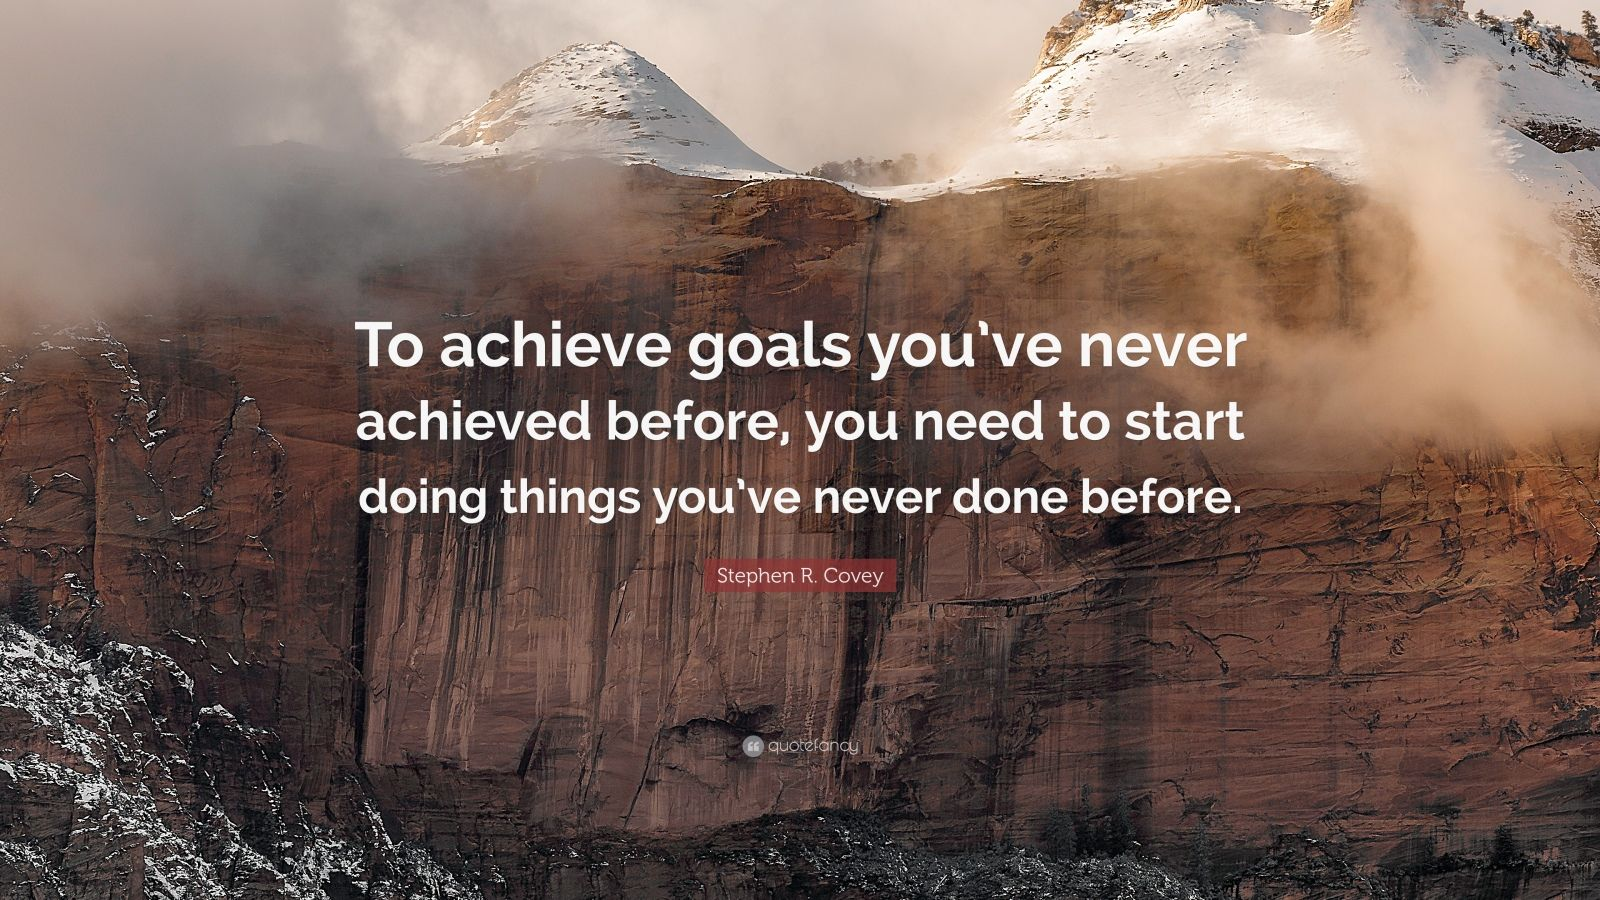 """Stephen R. Covey Quote: """"To achieve goals you've never achieved before, you need to start doing things you've never done before."""""""